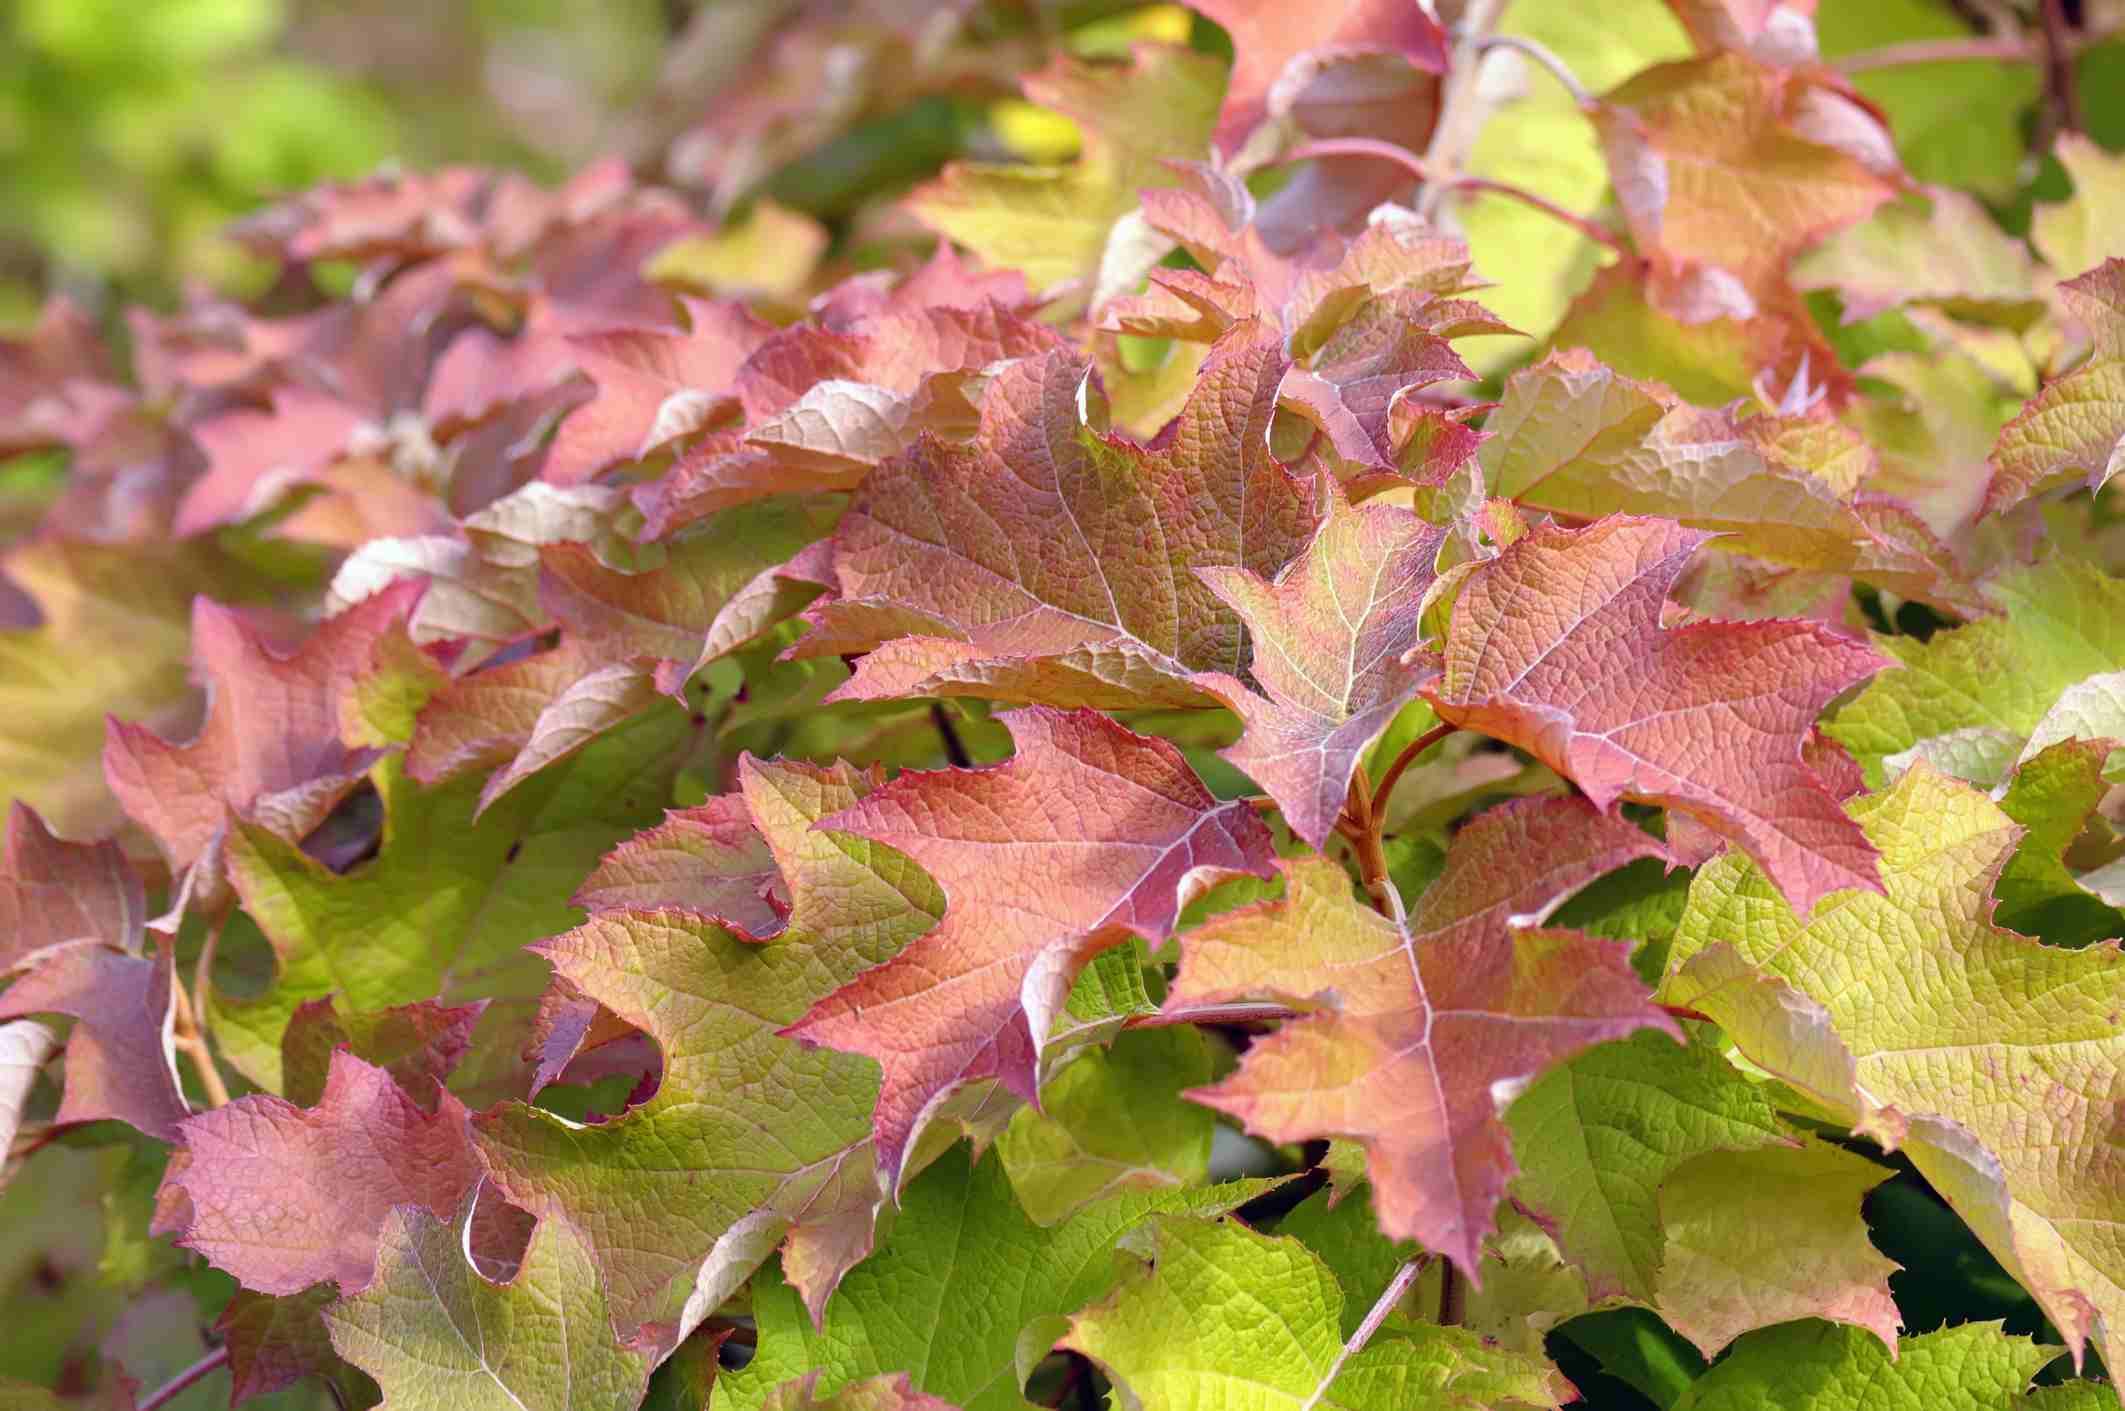 Oakleaf hydrangea bush with red color in its autumn leaves.